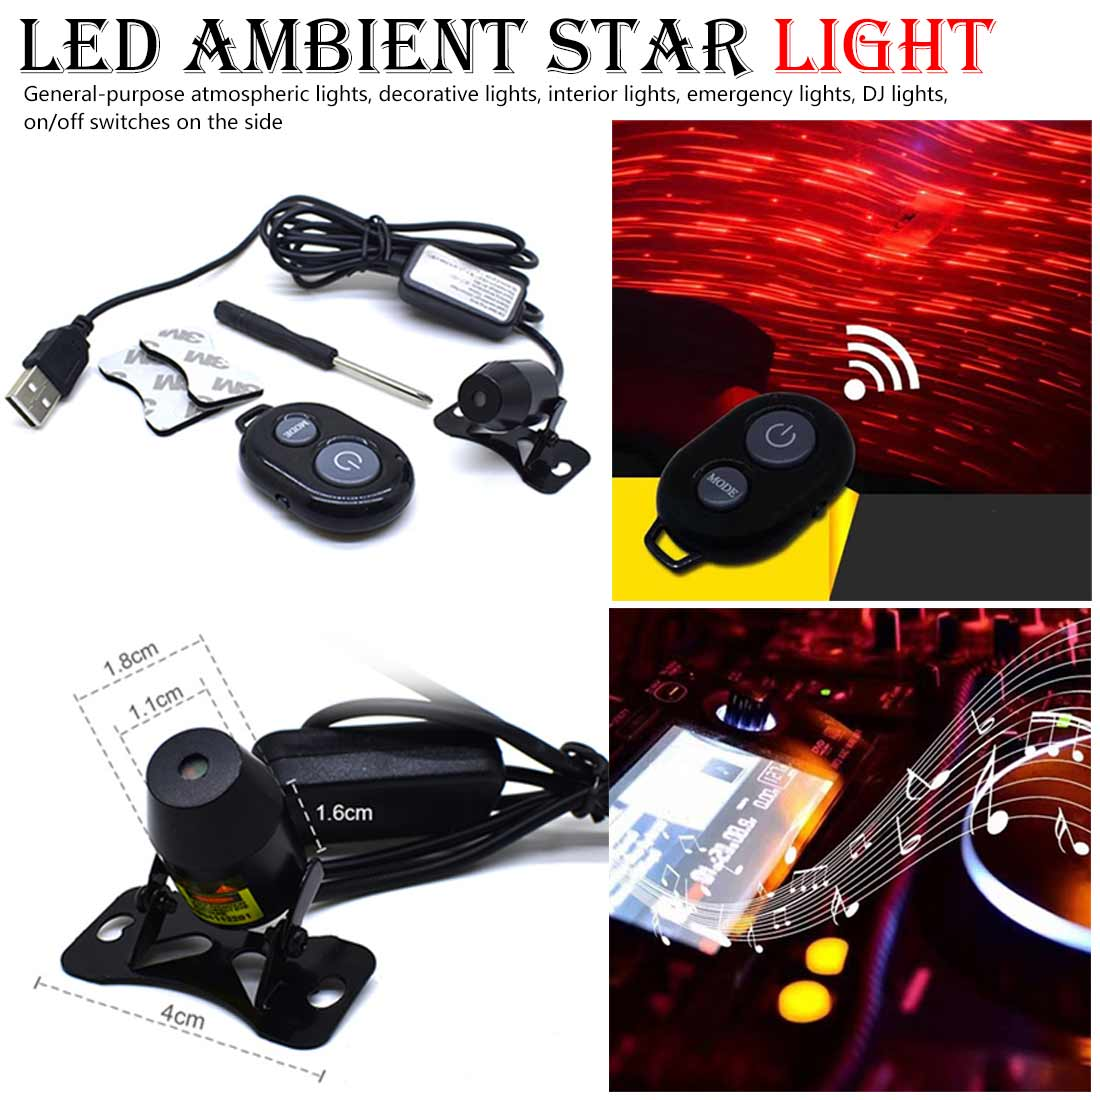 FangNymph Voice Control LED Light Car Atmosphere Ambient Star Light DJ Colorful Music Sound Lamp Remote Control Spotlight image